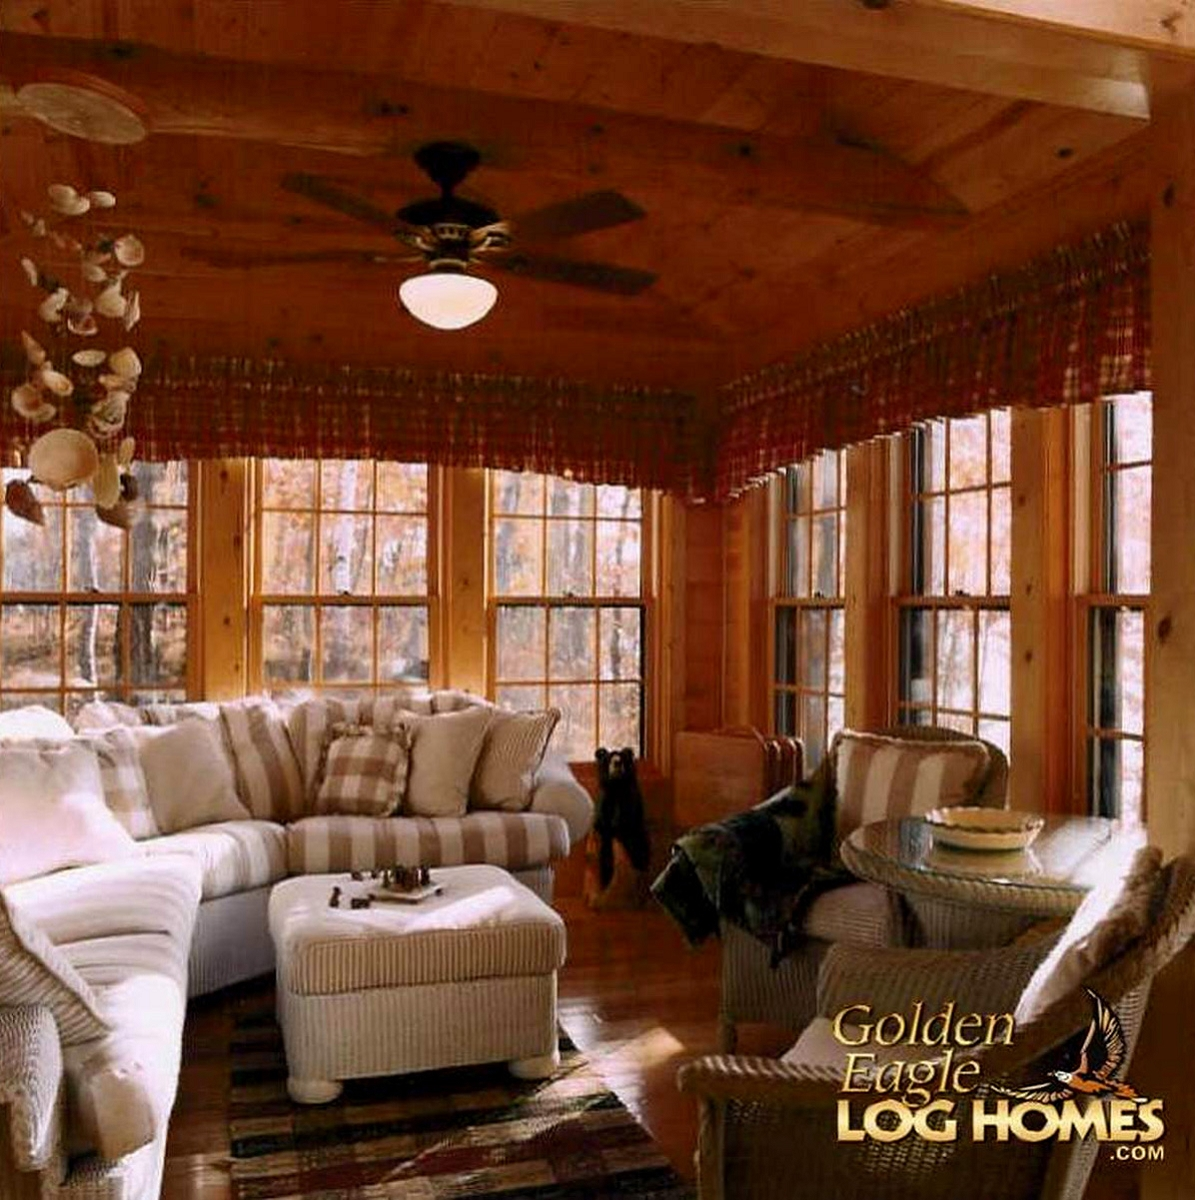 Golden eagle log and timber homes log home cabin for Log cabin sunrooms